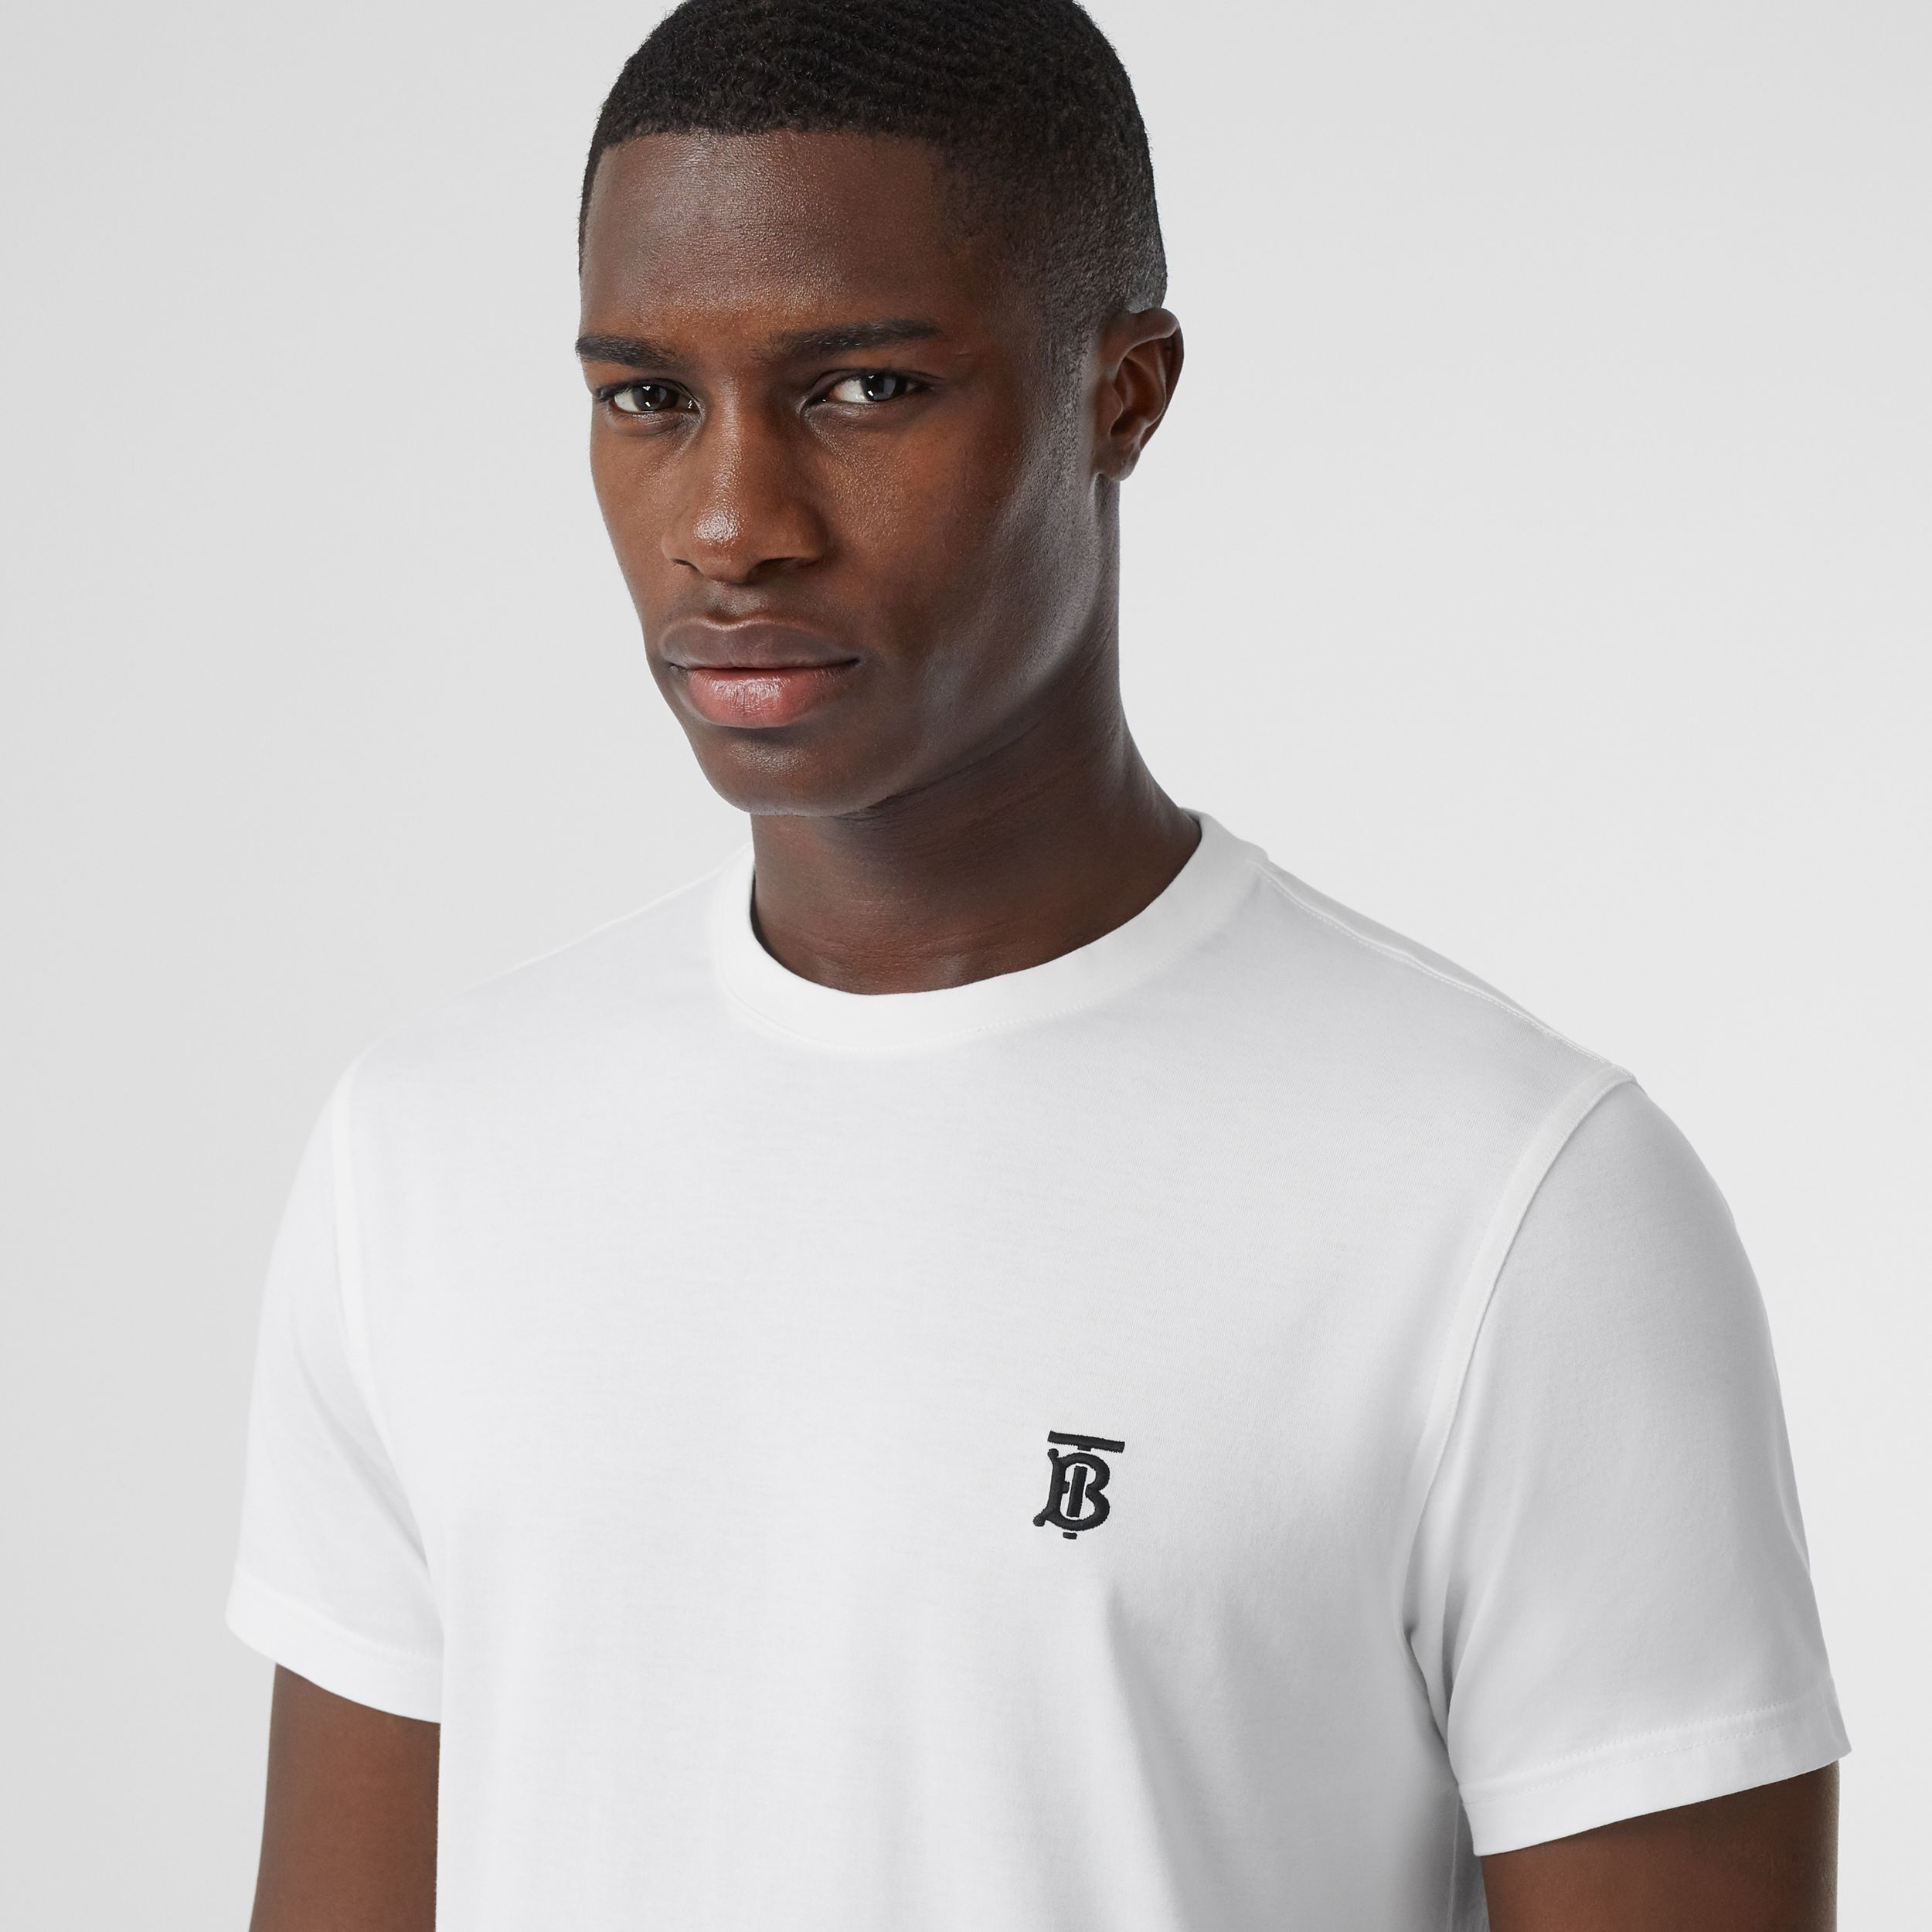 Monogram Motif Cotton T-shirt in White - Men | Burberry Canada - 2